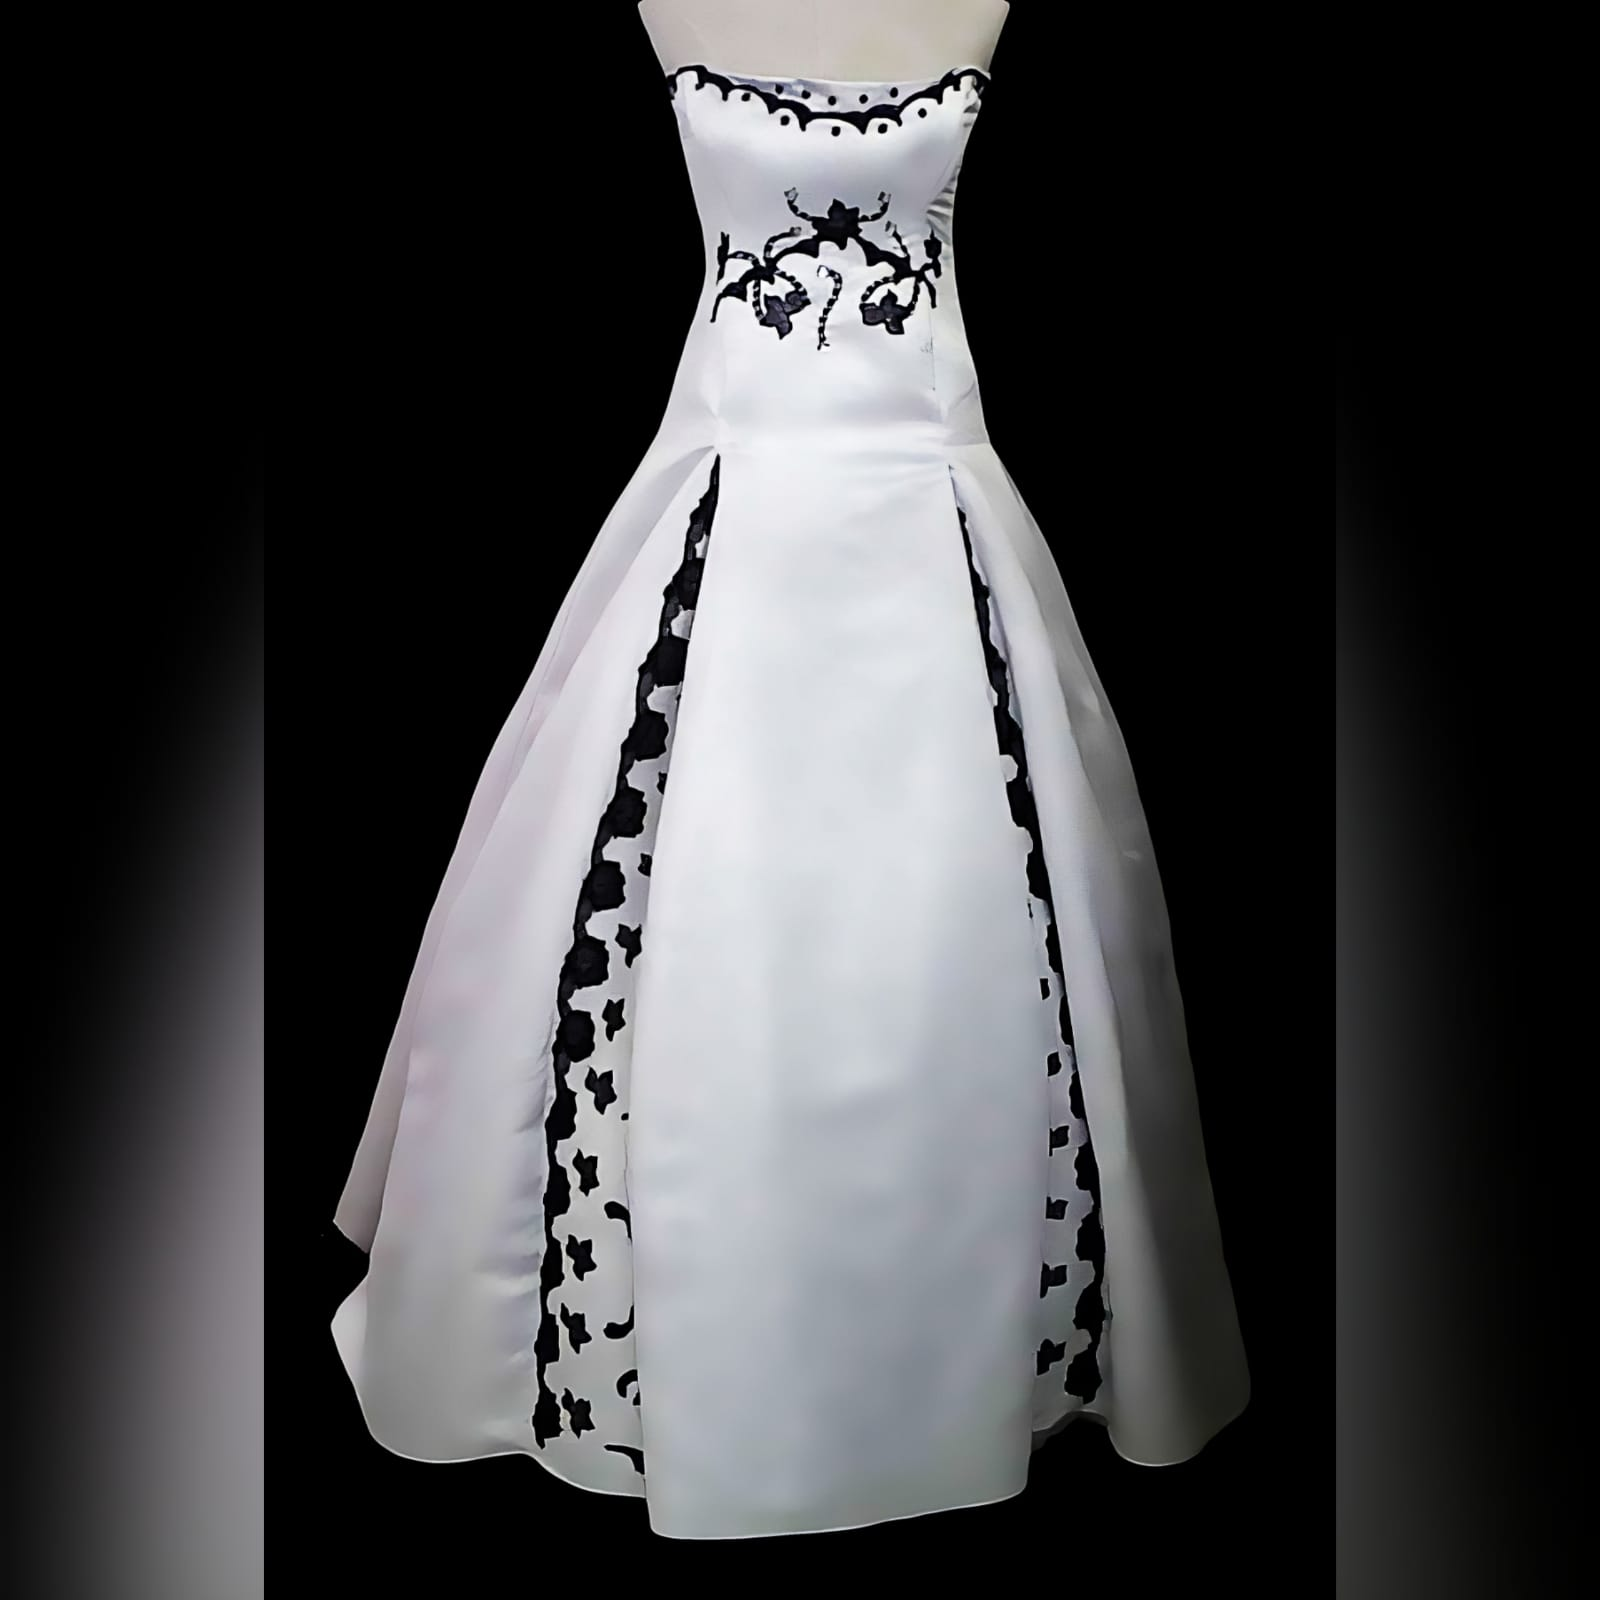 White & black panelled boob tube ballgown wedding dress 1 white panelled boob tube ballgown wedding dress with black lace detail spread throughout the hidden panels of wedding dress and on the under bust area. A lace up back in with black ribbon. When you walk with this dress, it opens to reveal the black lace.